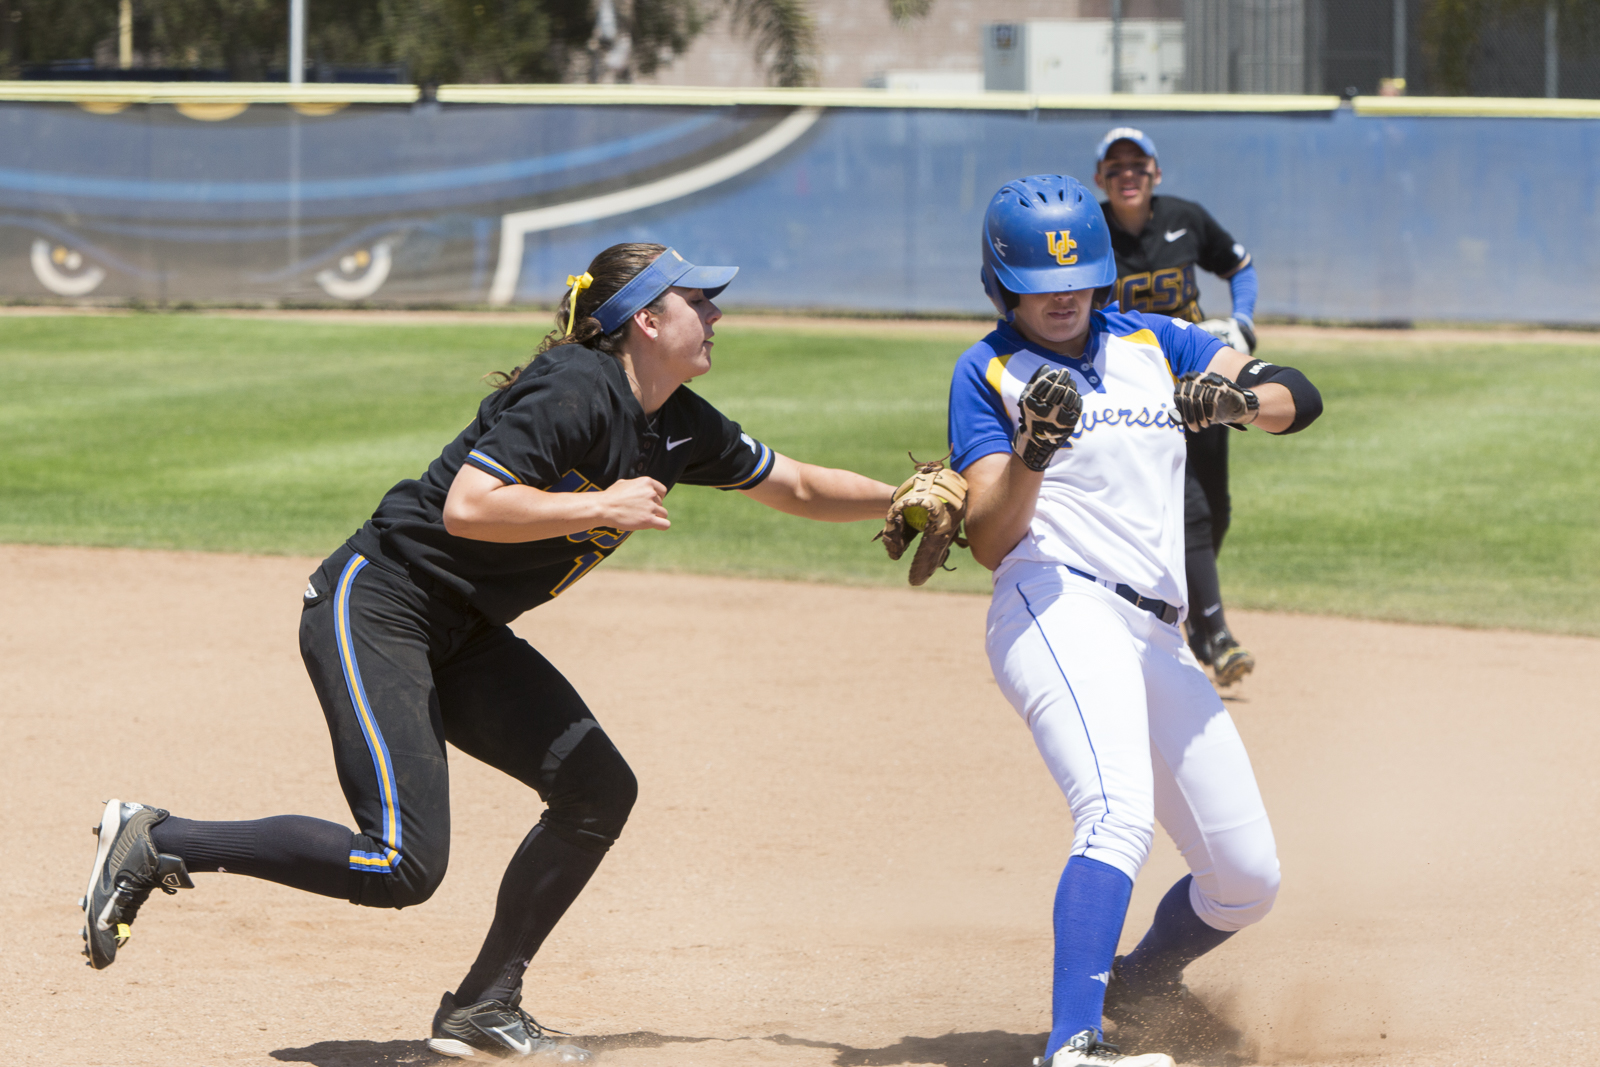 Jenessa Jeppesen tags a runner out at first base. Dustin Harris/Daily Nexus